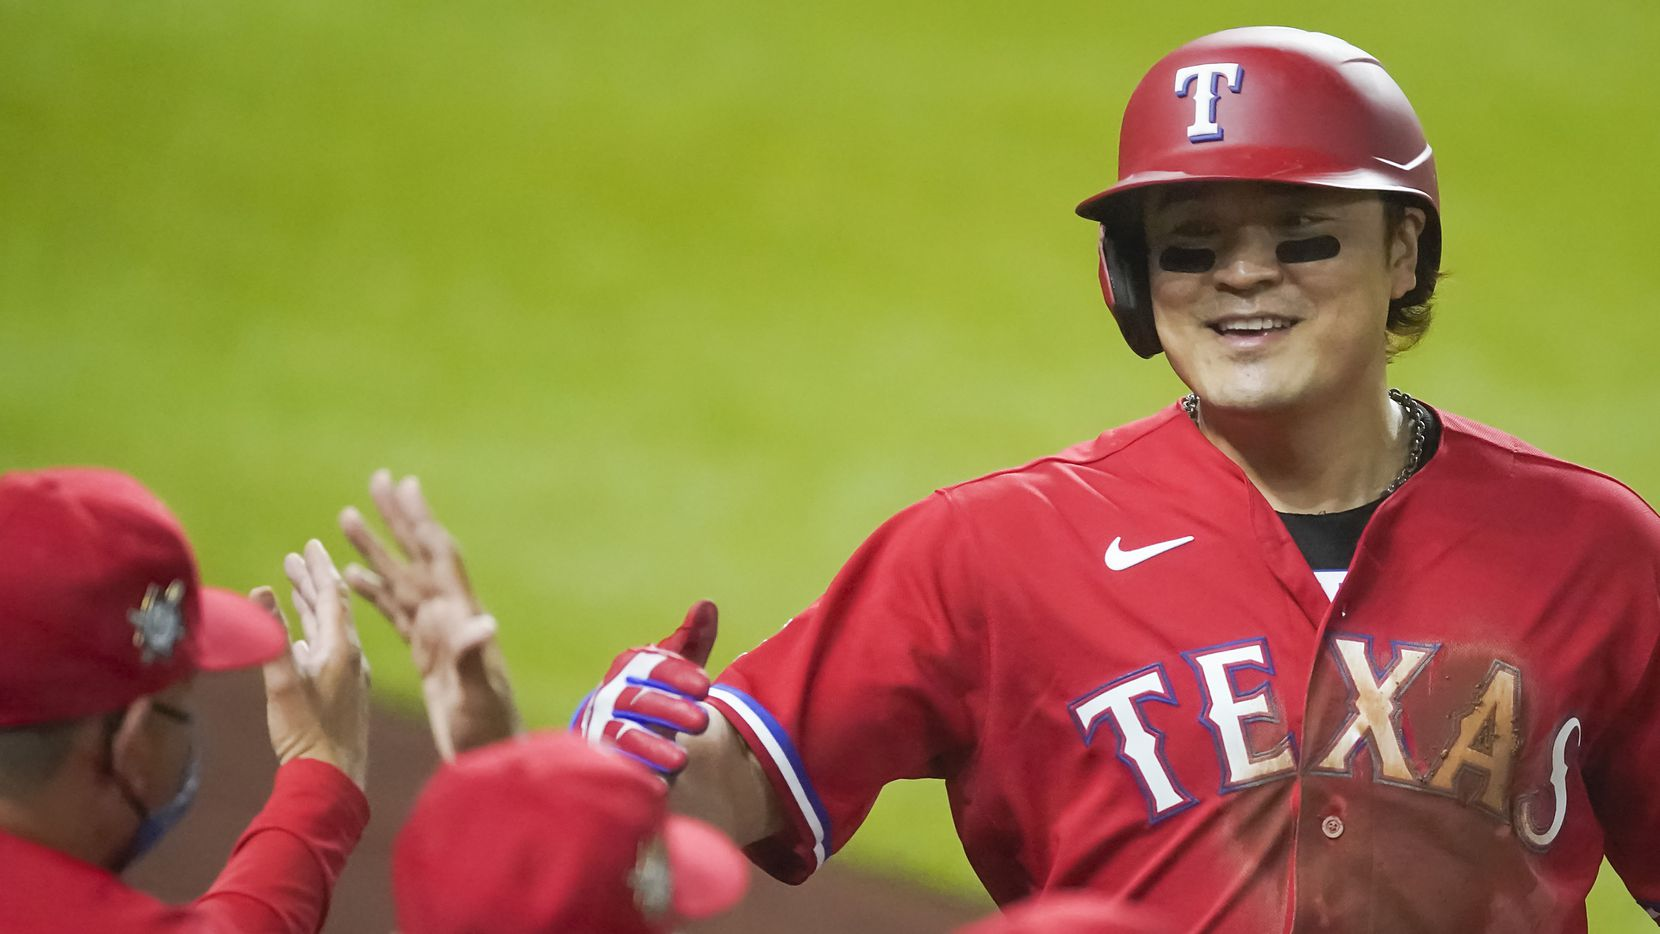 Texas Rangers designated hitter Shin-Soo Choo celebrates after scoring during the third inning against the Los Angeles Dodgers at Globe Life Field on Friday, Aug. 28, 2020.